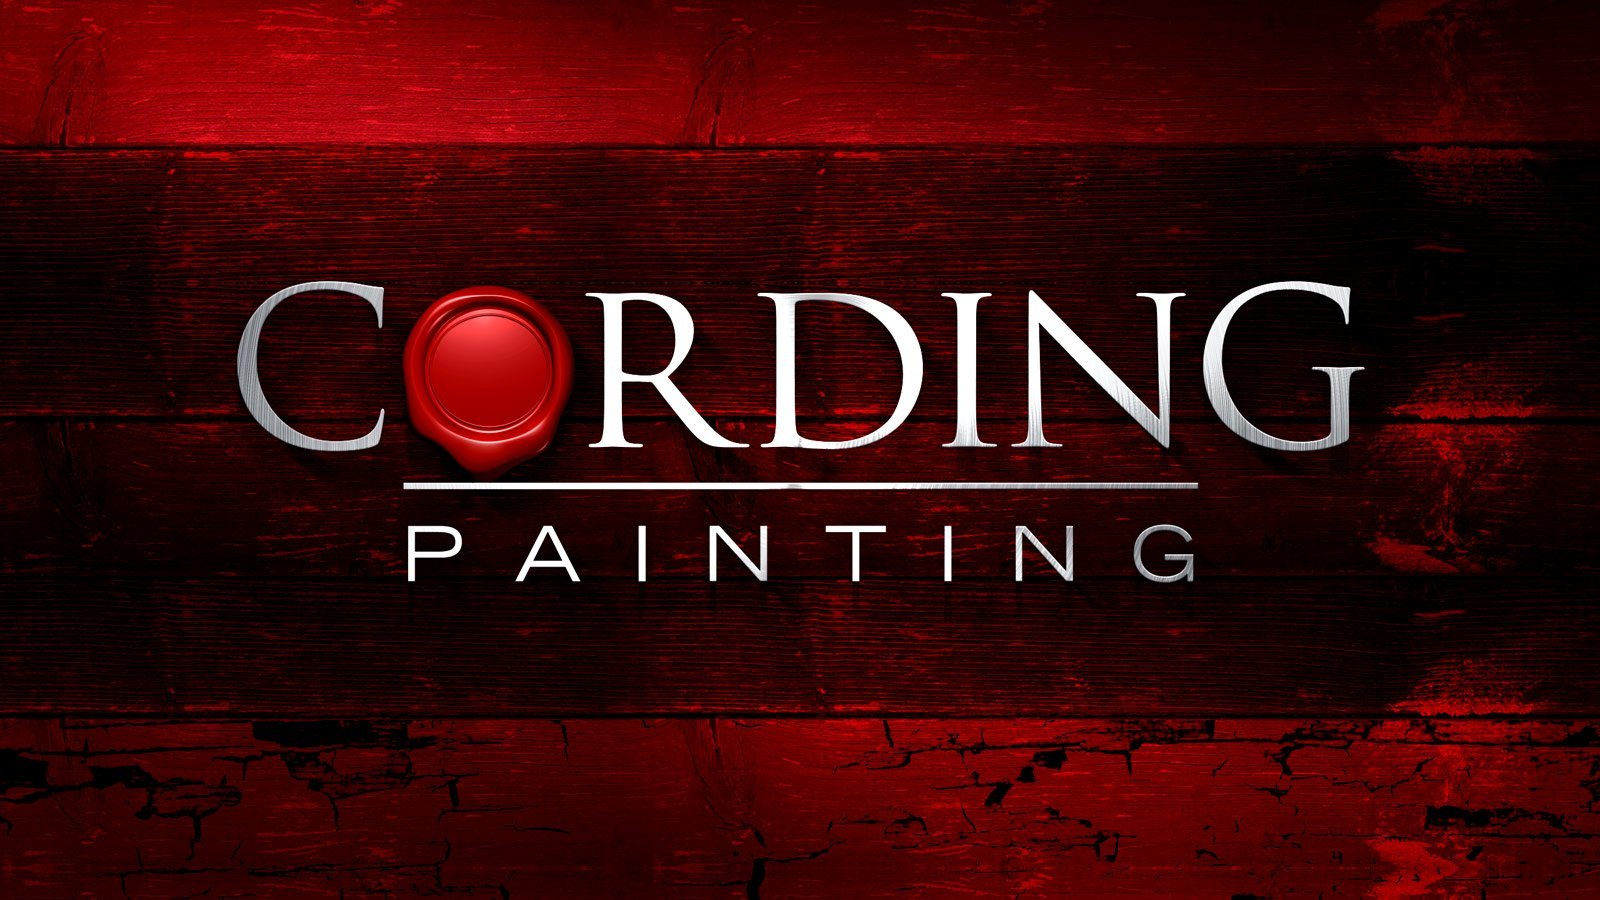 RE EVOLUTION // Cording Painting - Branding